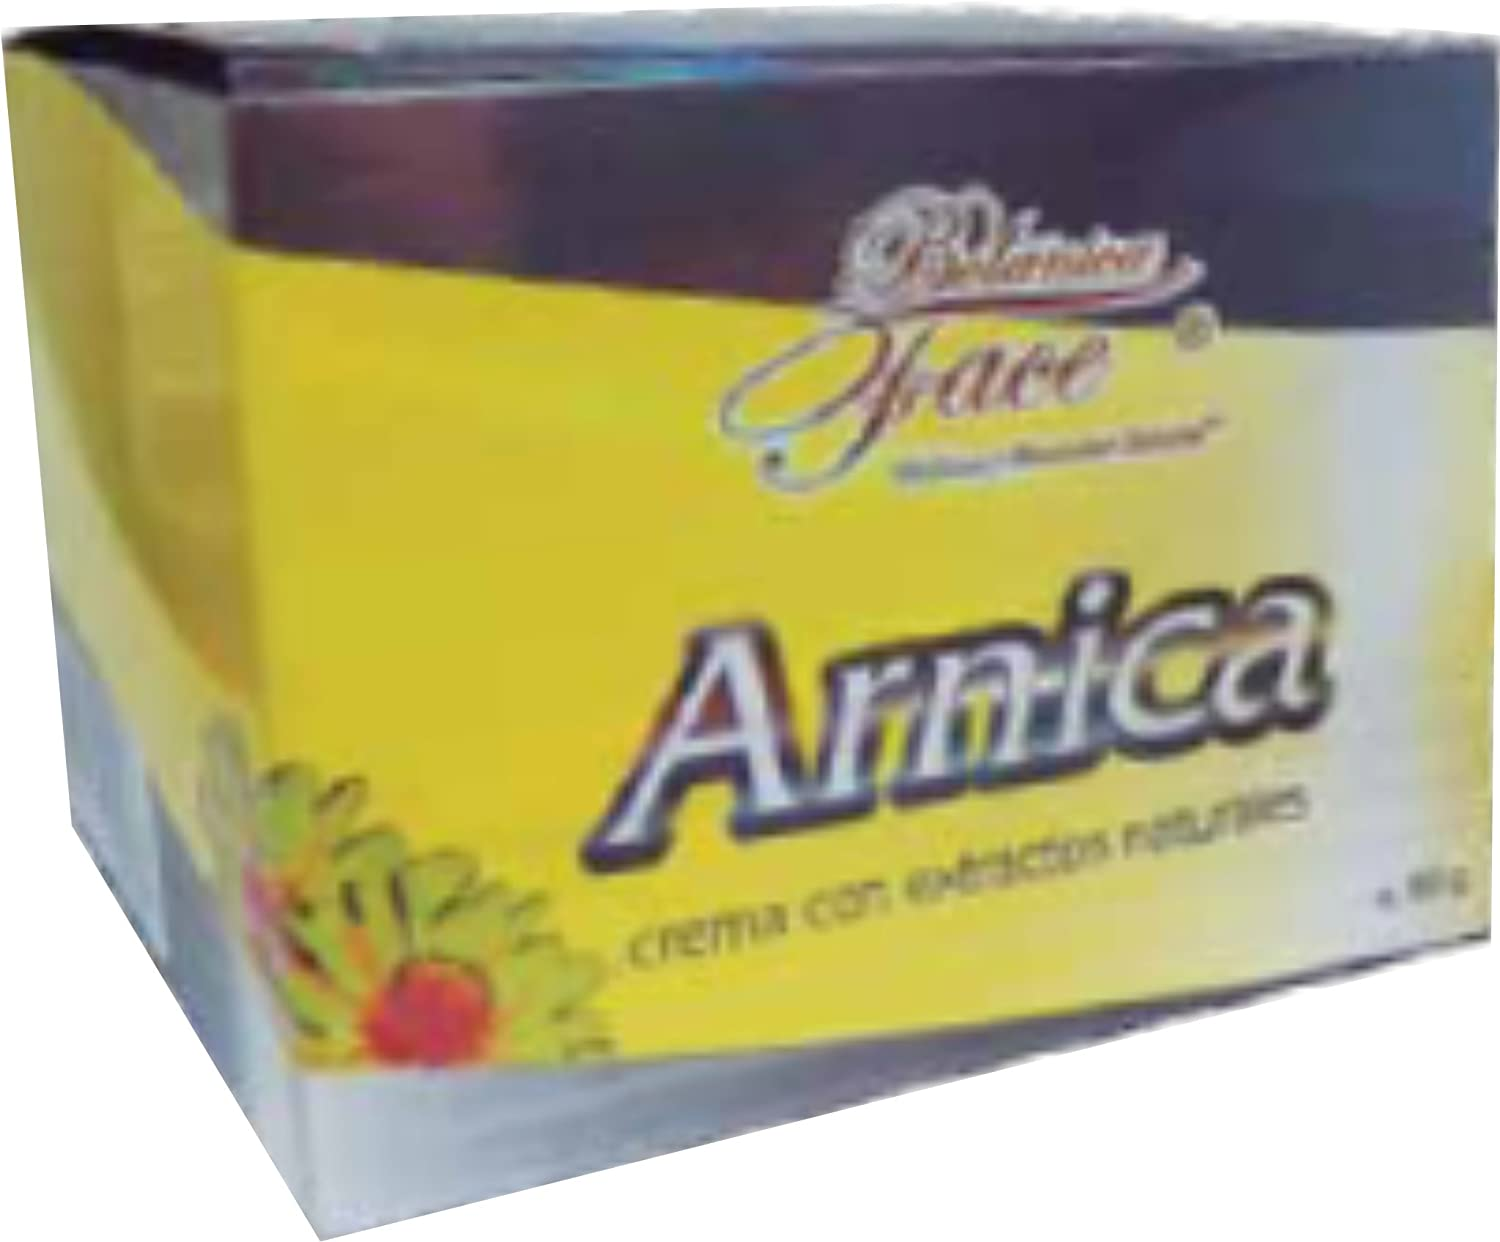 Amazon.com : Botanica Face Arnica crema. Suaviza y humecta todo tipo de piel./Arnica cream face. For soft and natural looking skin. 60gr / 2oz : Beauty